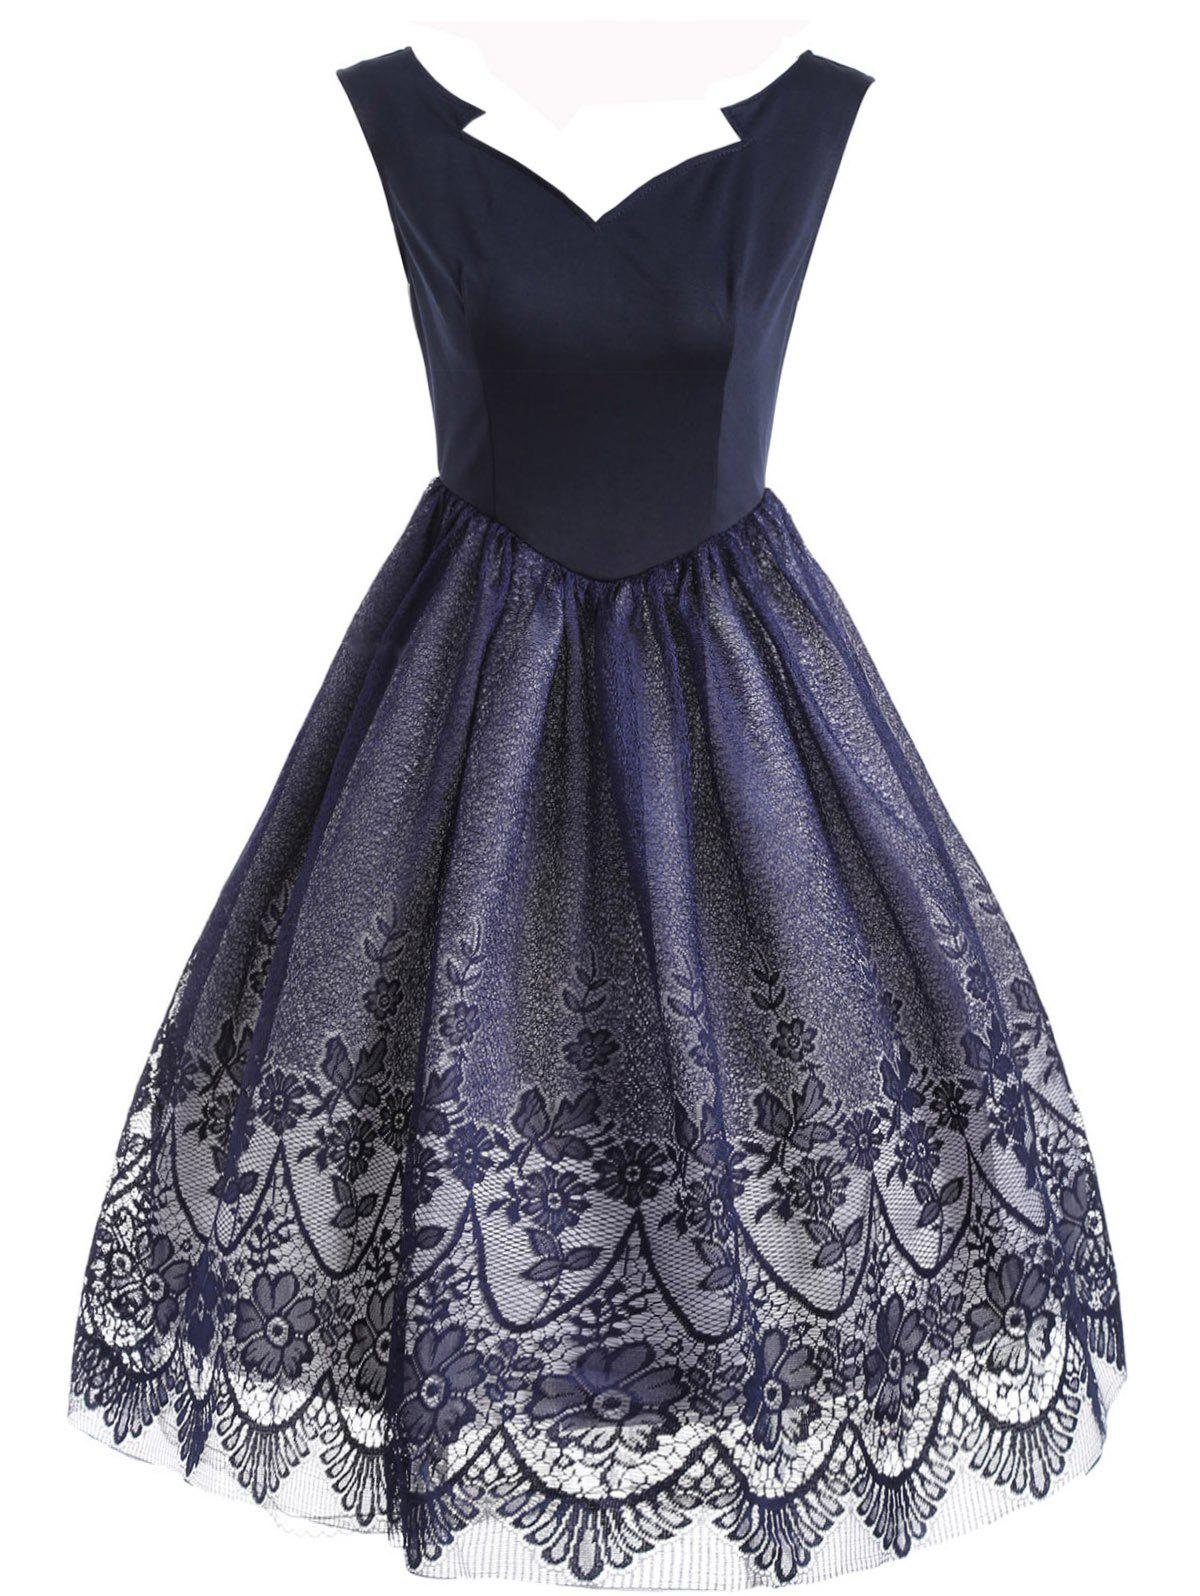 Floral Lace Sleeveless Overlay Vintage Dress - PURPLISH BLUE L